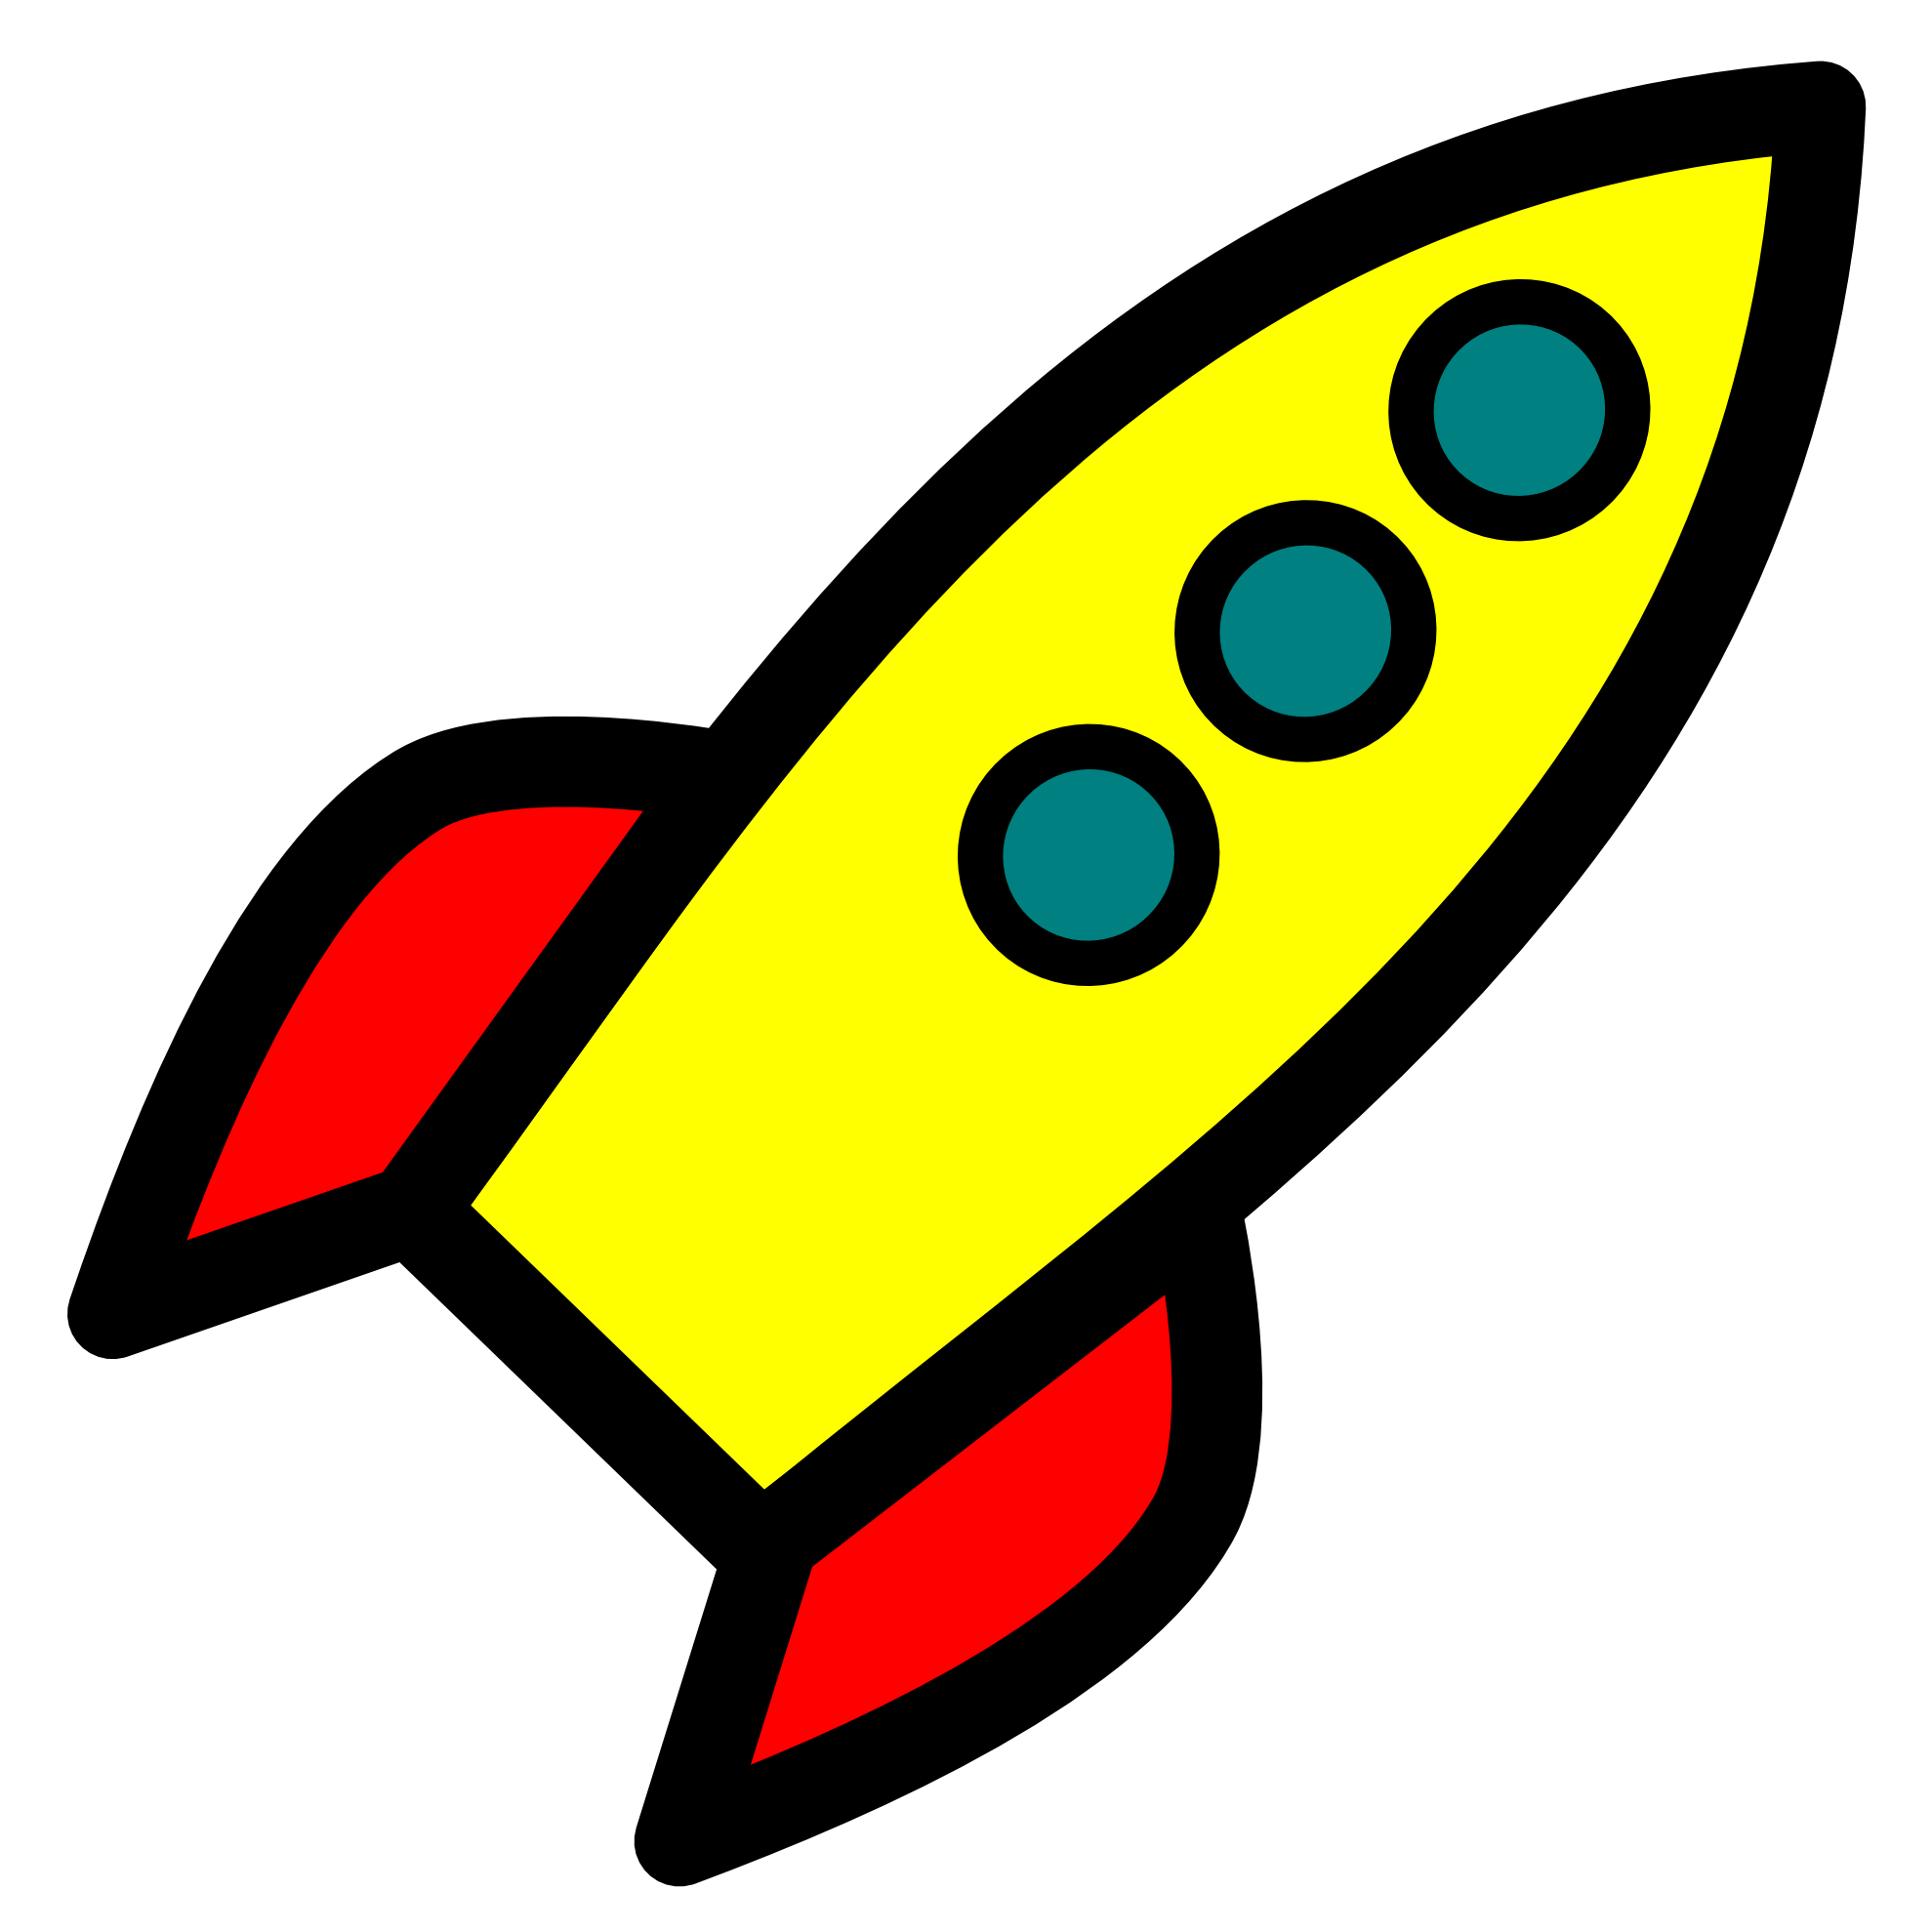 Rocketship pictures of a rock - Rocket Ship Clipart